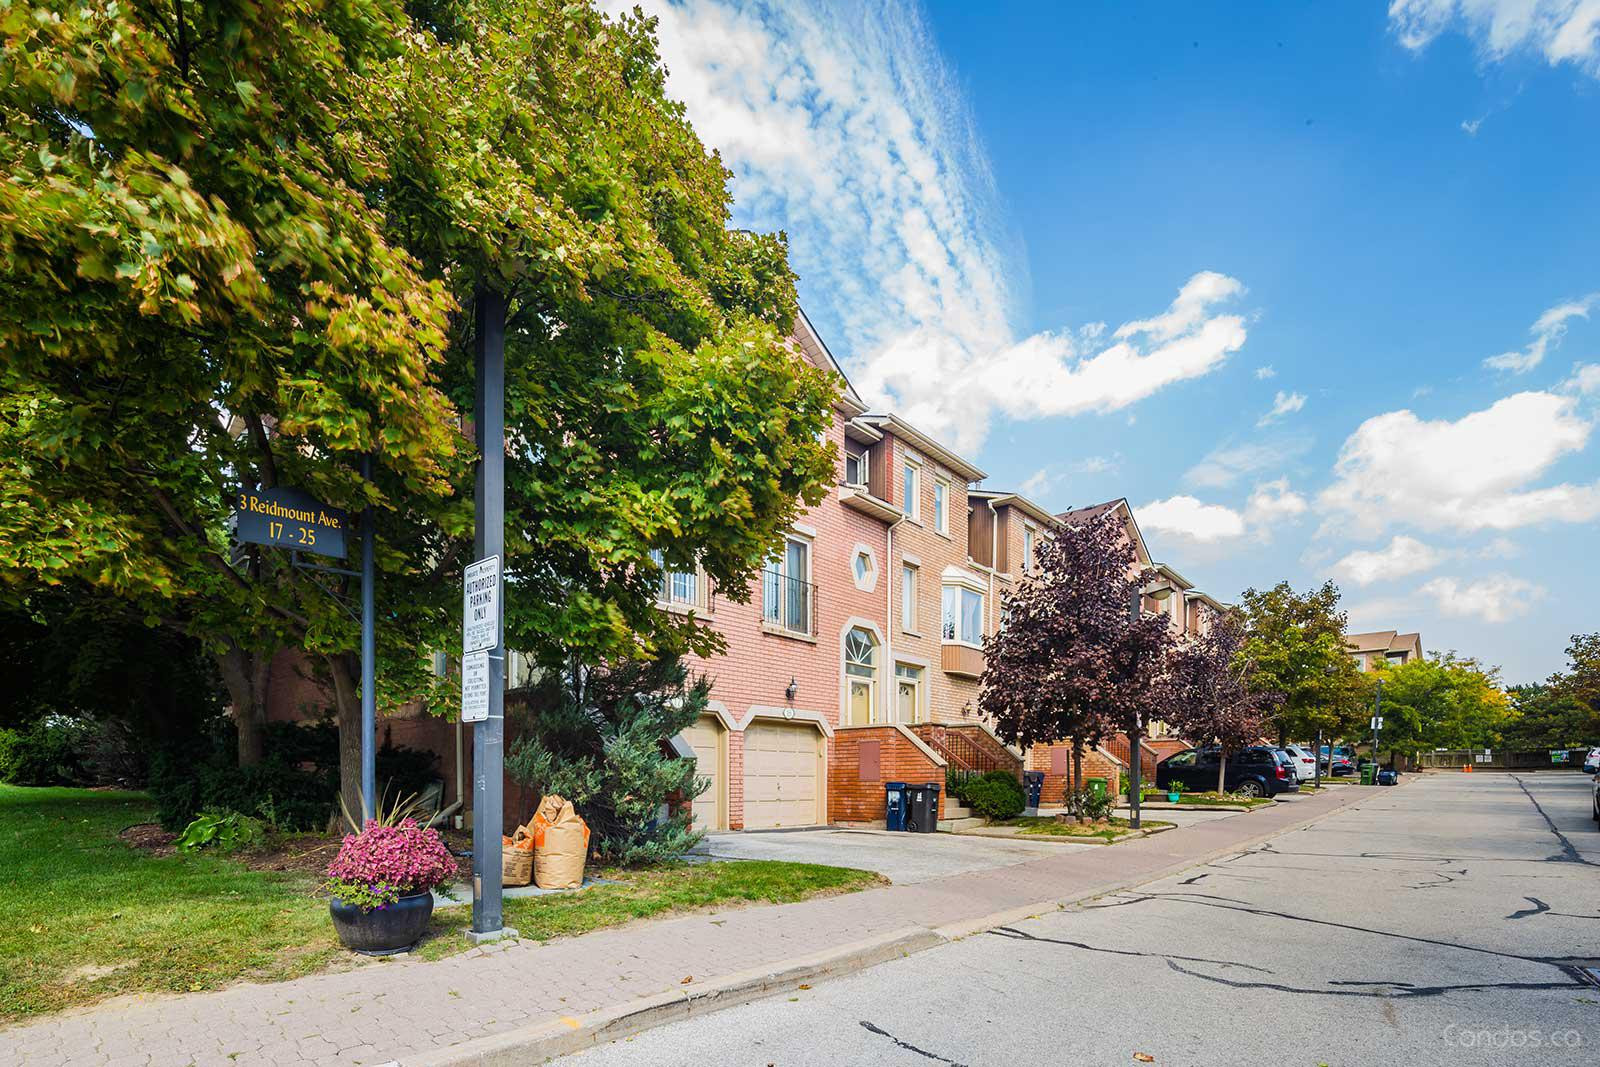 Astoral Court at 3 Reidmount Ave, Toronto 0